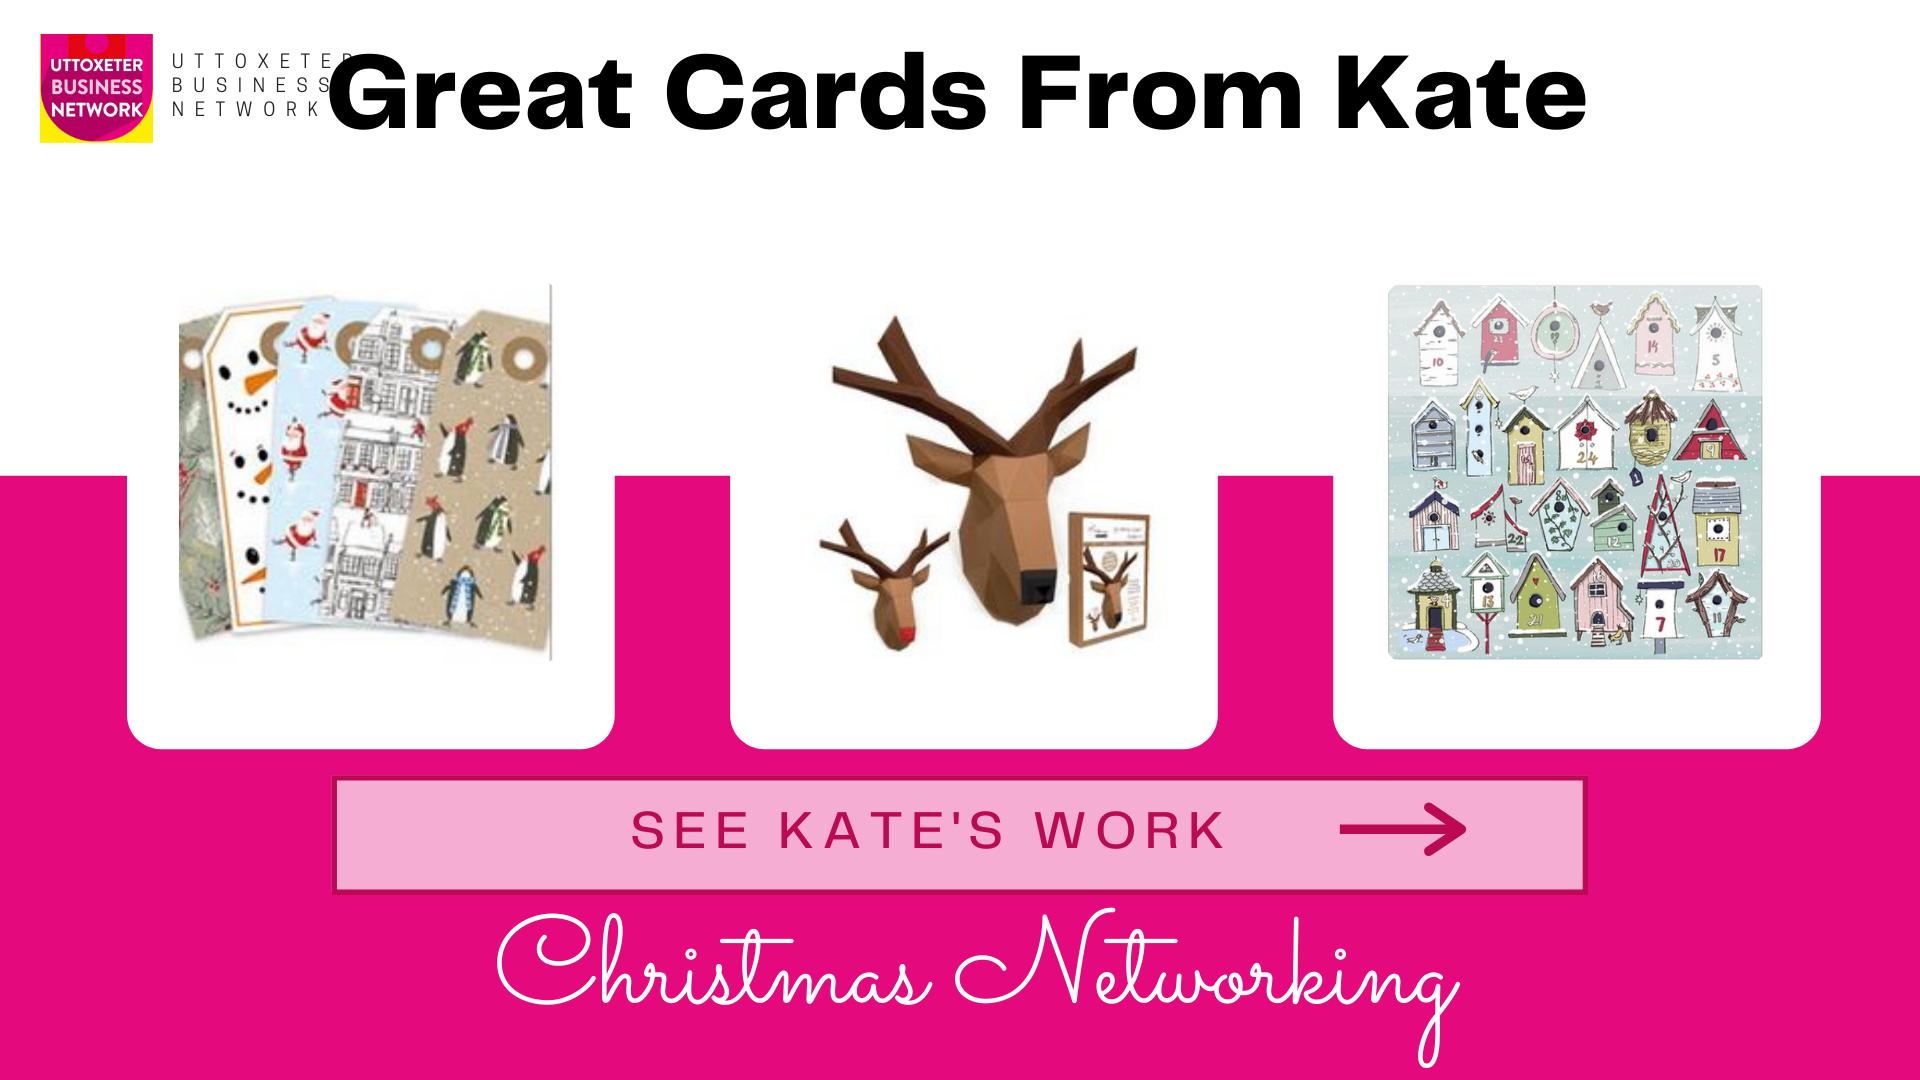 Great cards from Kate